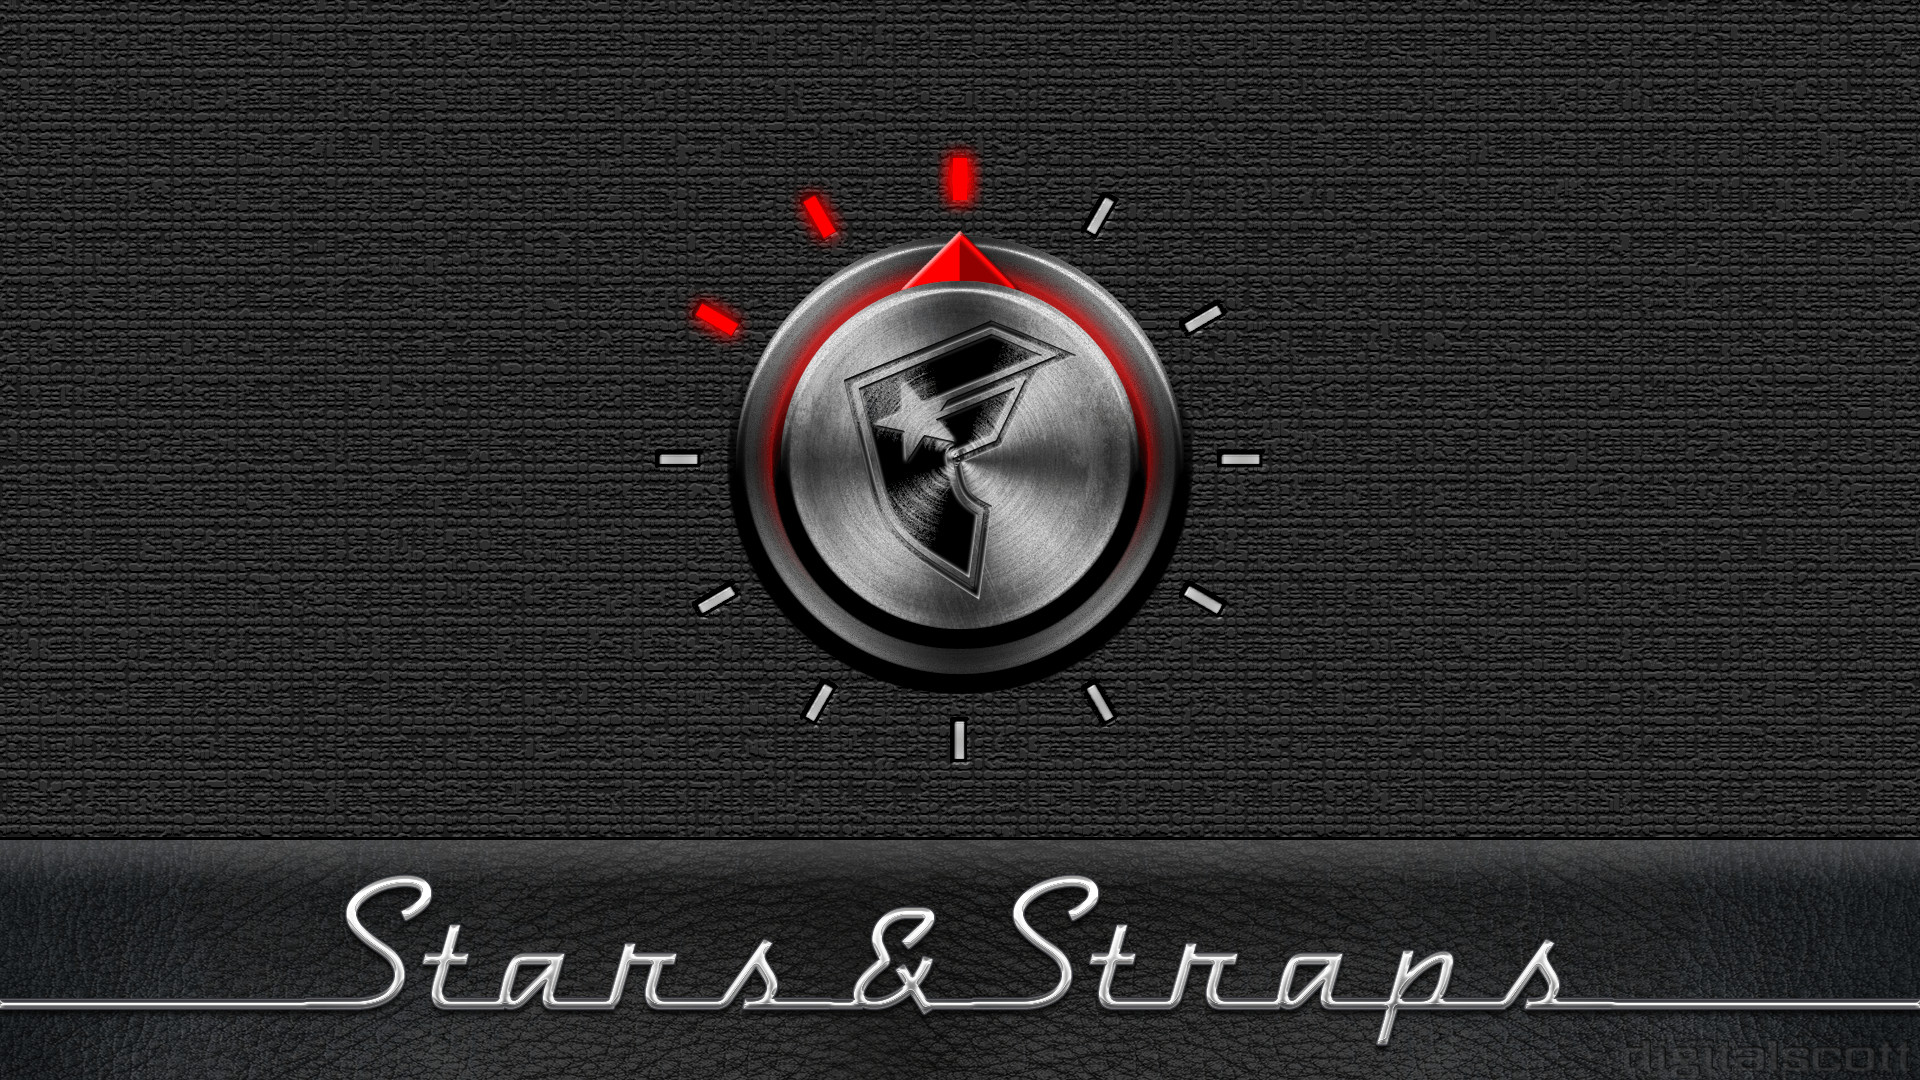 famous stars and straps wallpapers 56 images